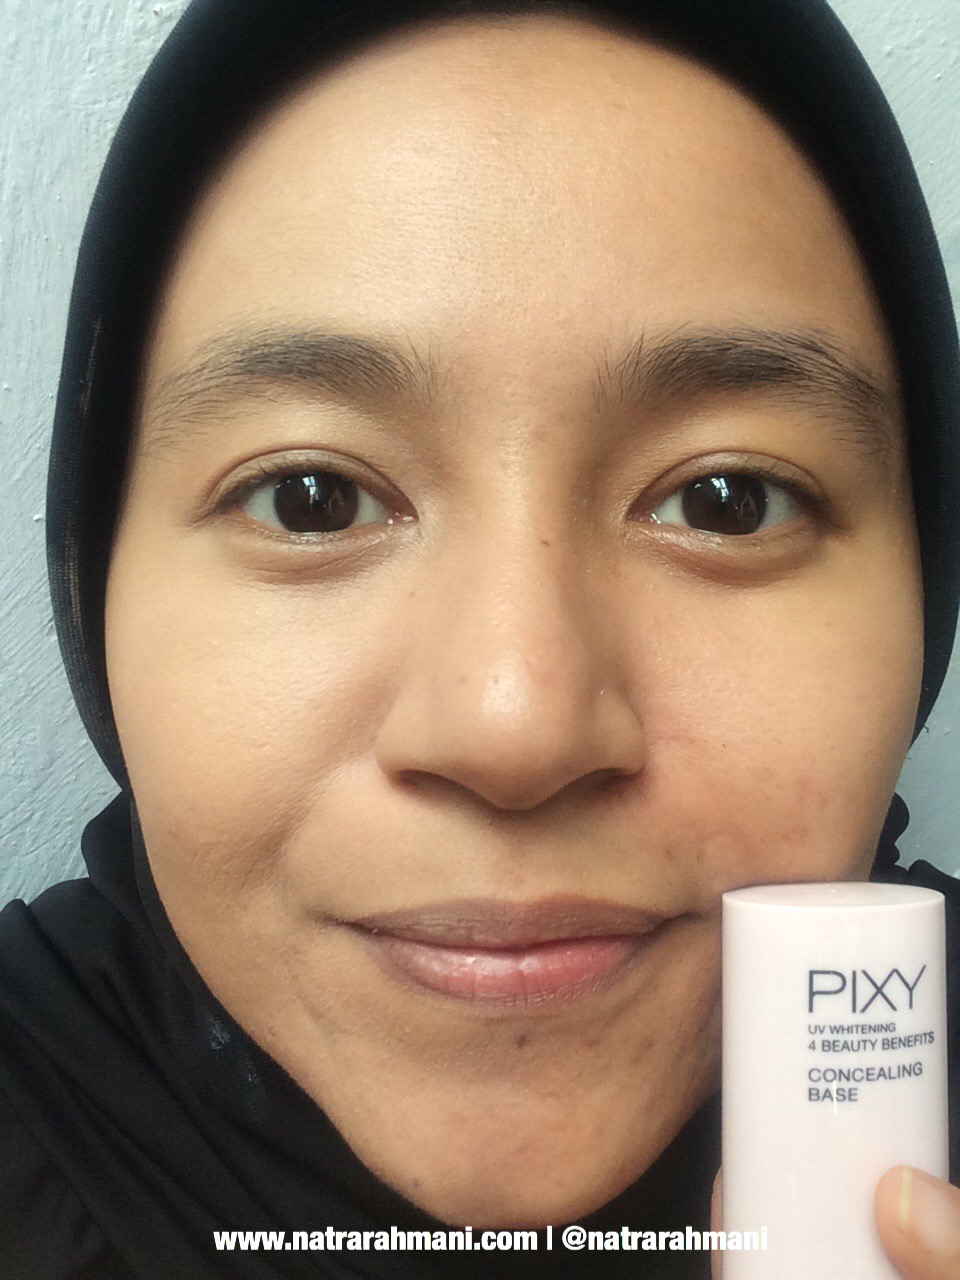 pixy-4-beauty-benefits-base-make-up-concealing-base-natrarahmani